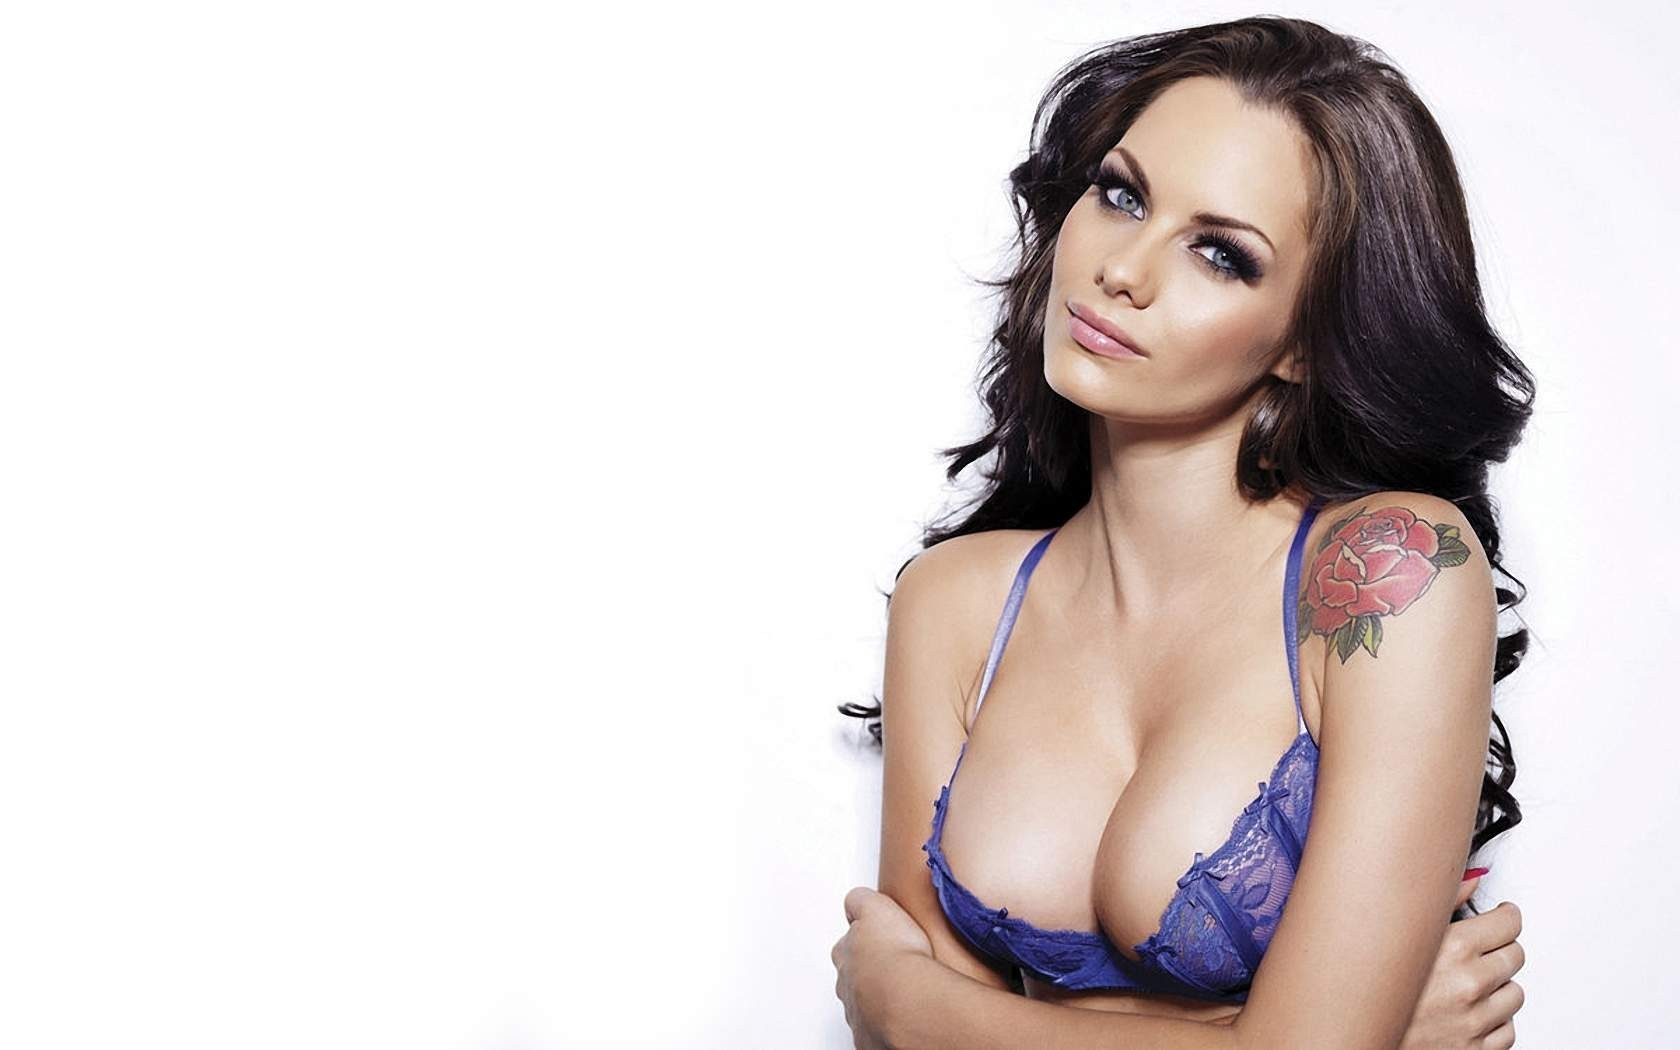 brunettes tattoos woman bra HD Wallpaper